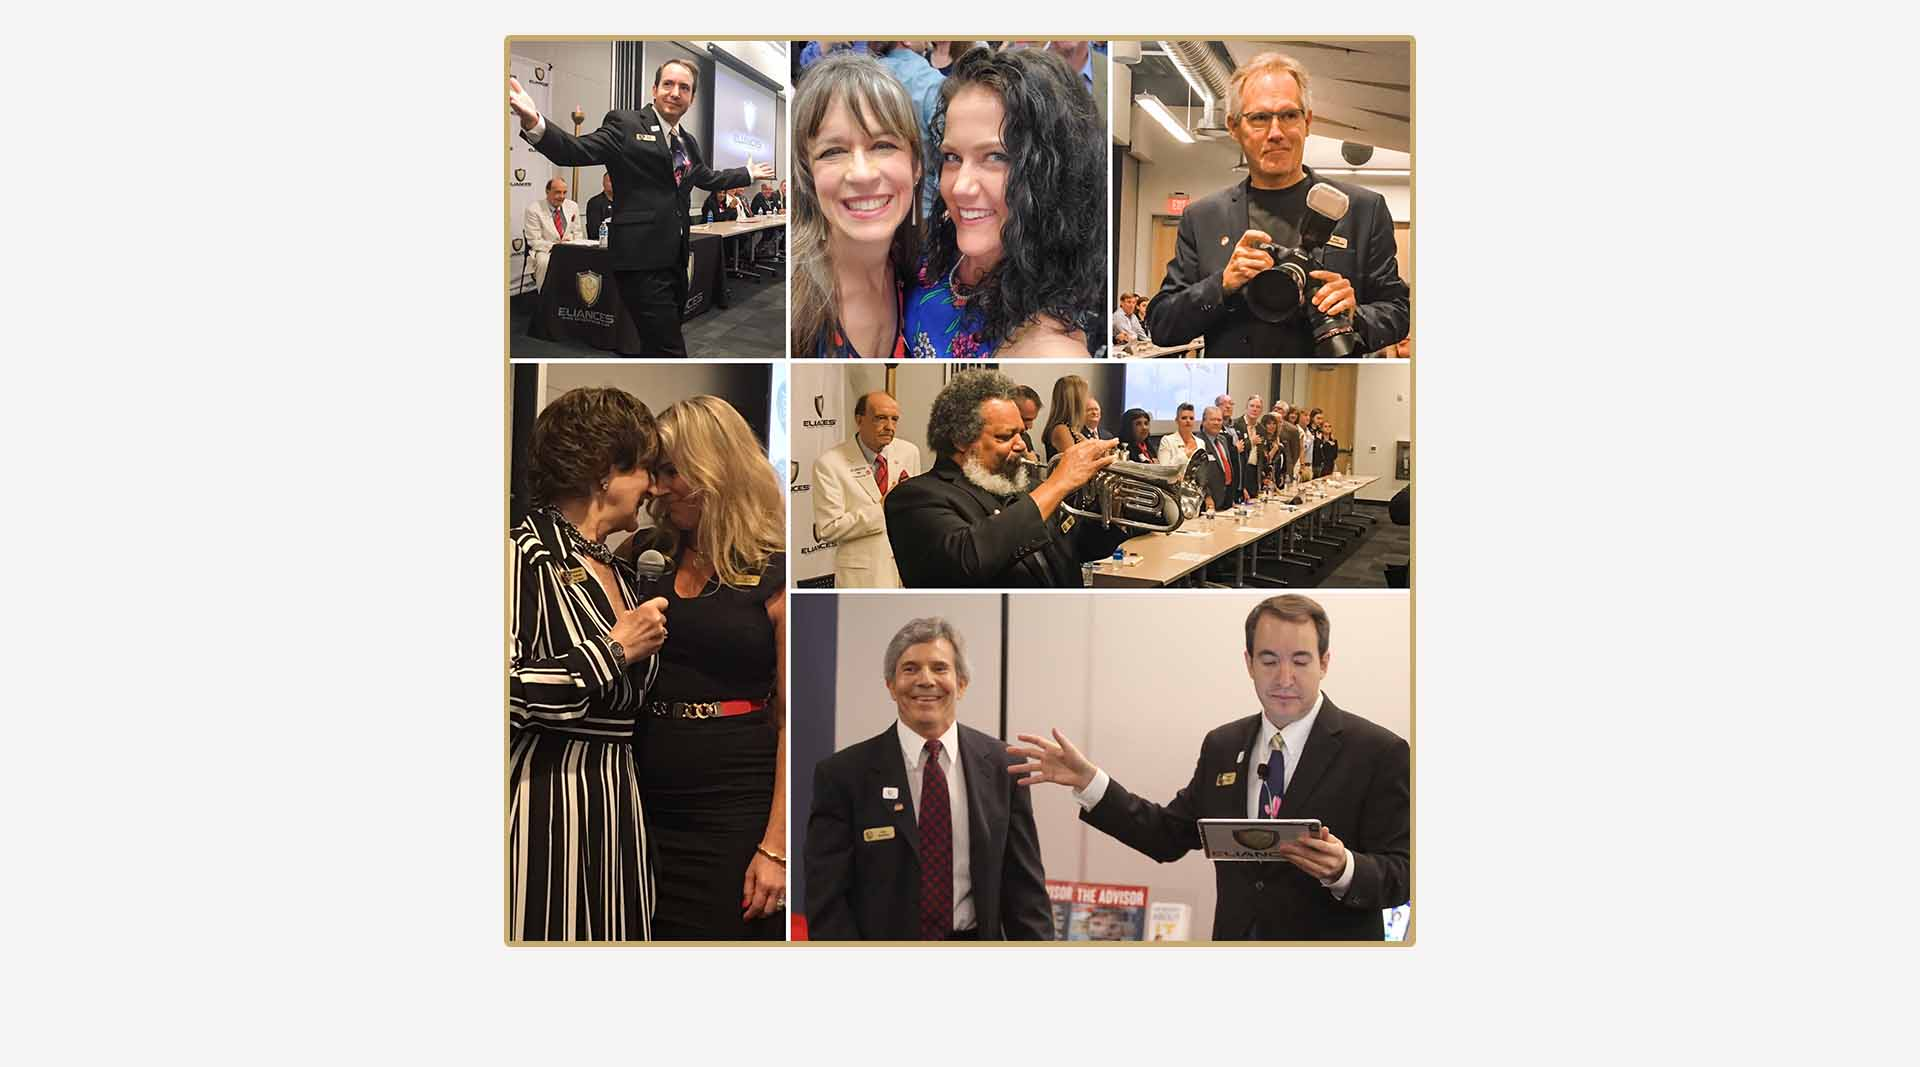 Photo collage of business networking event created by Clamshell Communications for Eliances